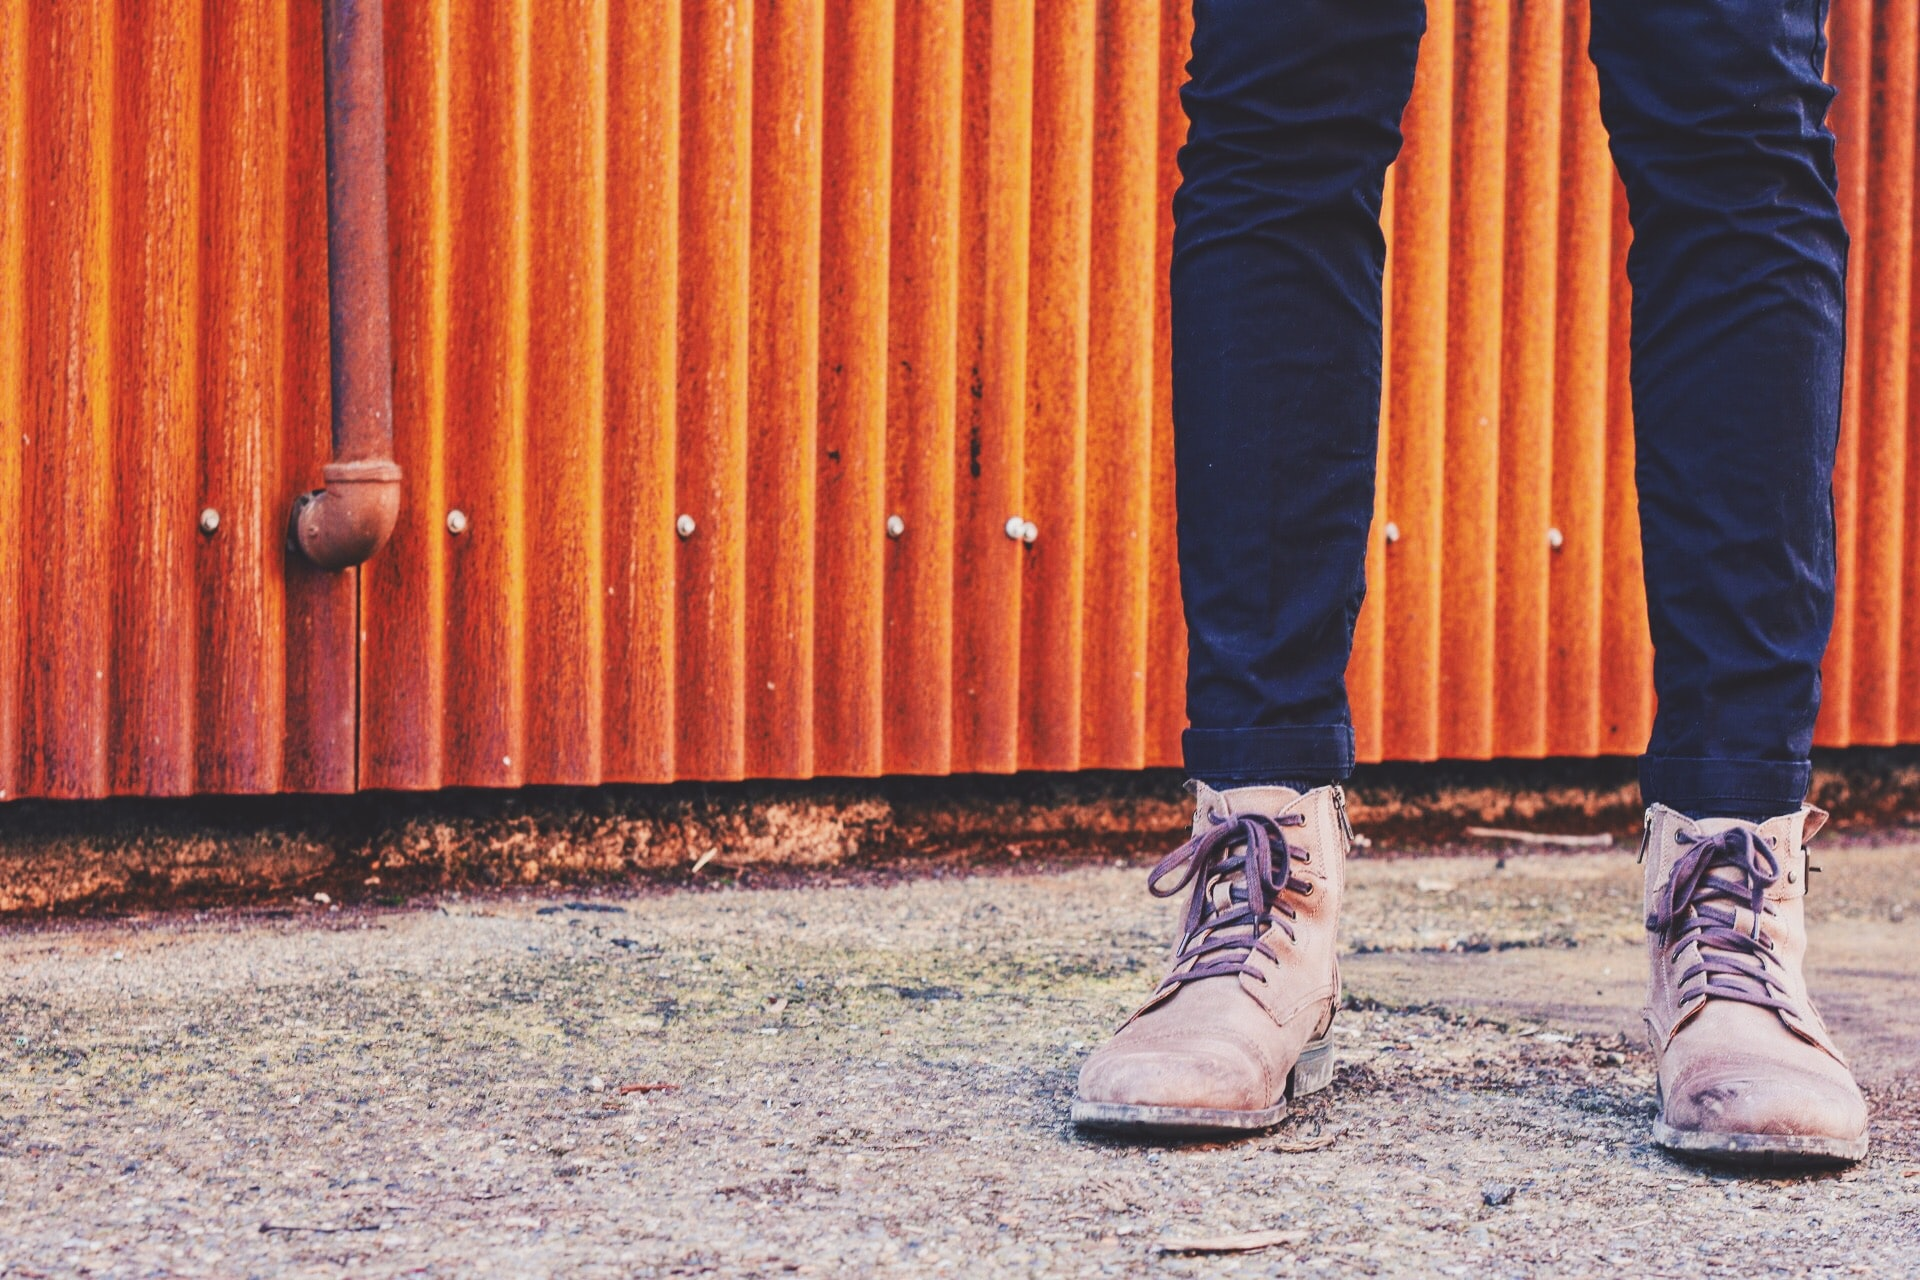 A down low shot of a man's shoes and skinny jeans with a rustic setting